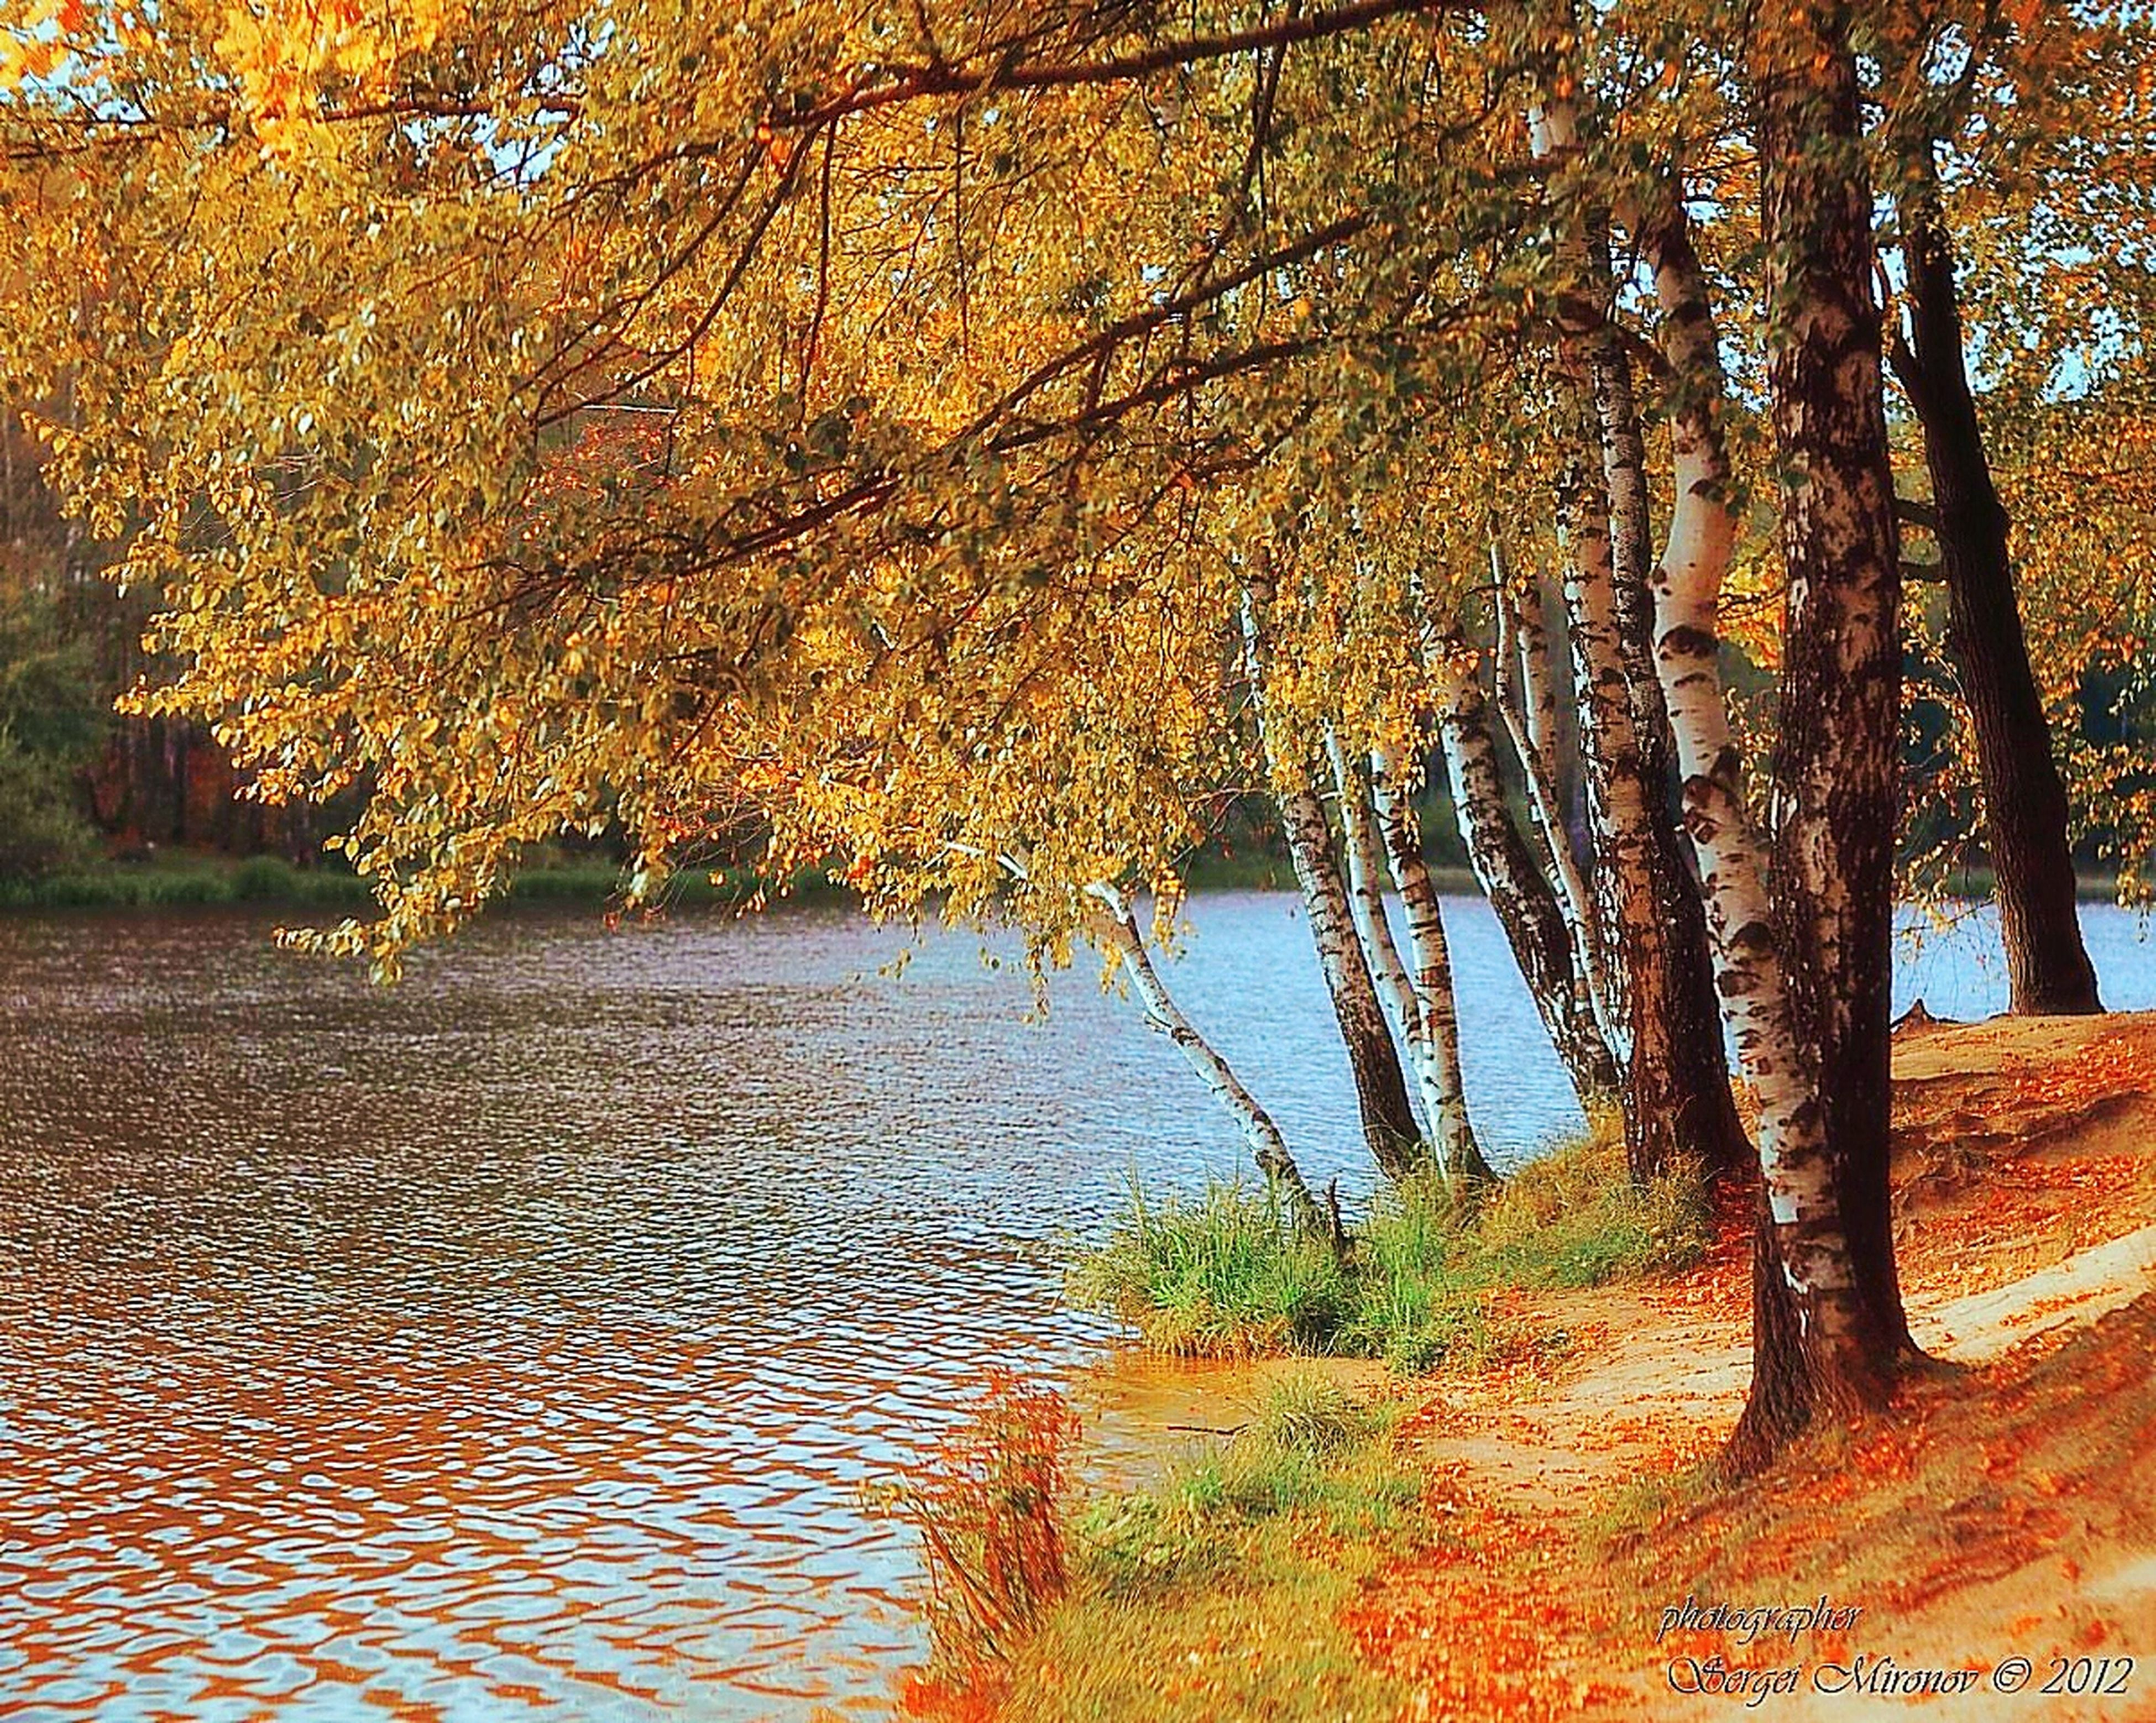 tree, autumn, change, season, branch, water, orange color, nature, tranquility, growth, beauty in nature, tree trunk, tranquil scene, scenics, leaf, yellow, outdoors, no people, day, park - man made space